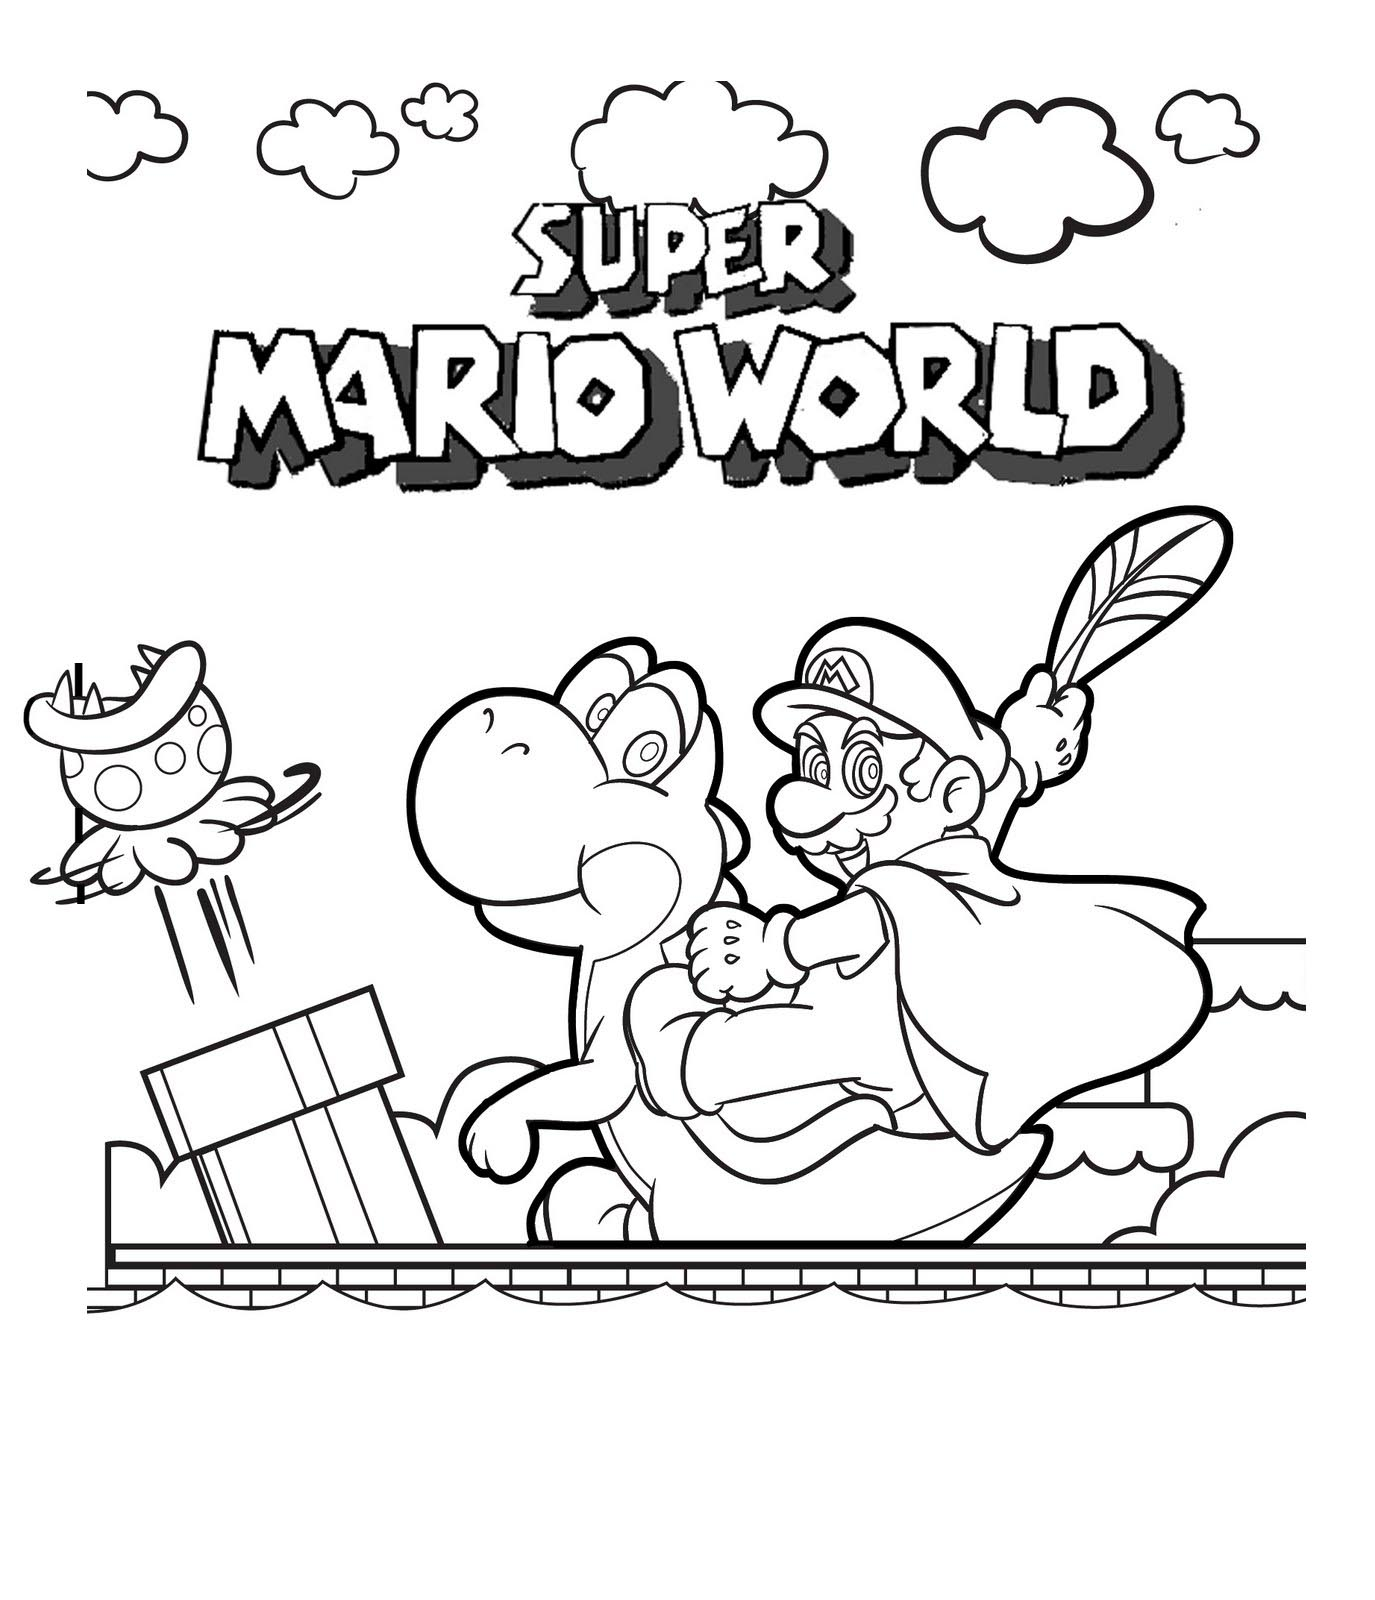 download super mario coloring pages 4 - Mario Coloring Page